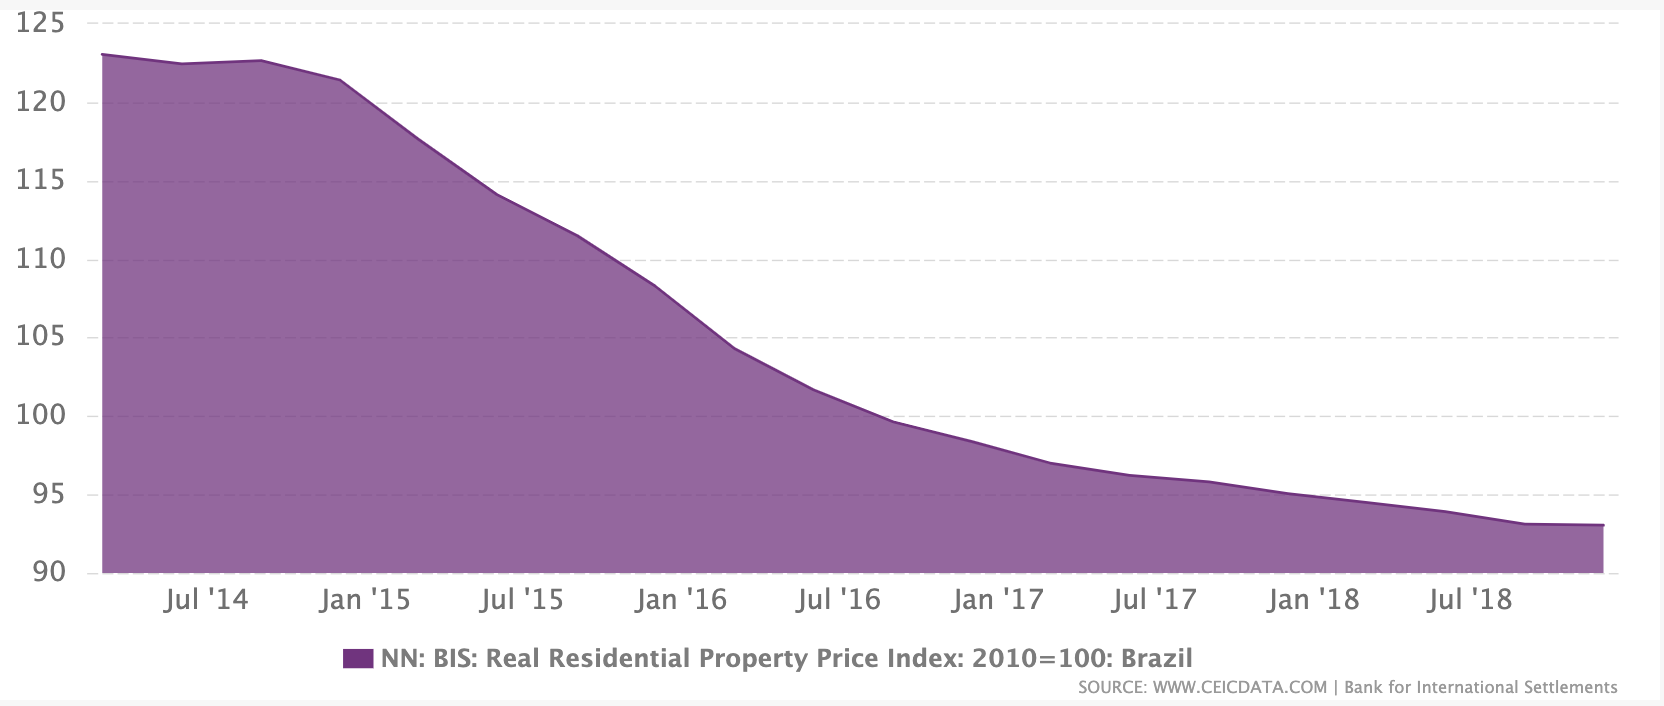 BIS Graph showing falling Brazilian Real Property Prices